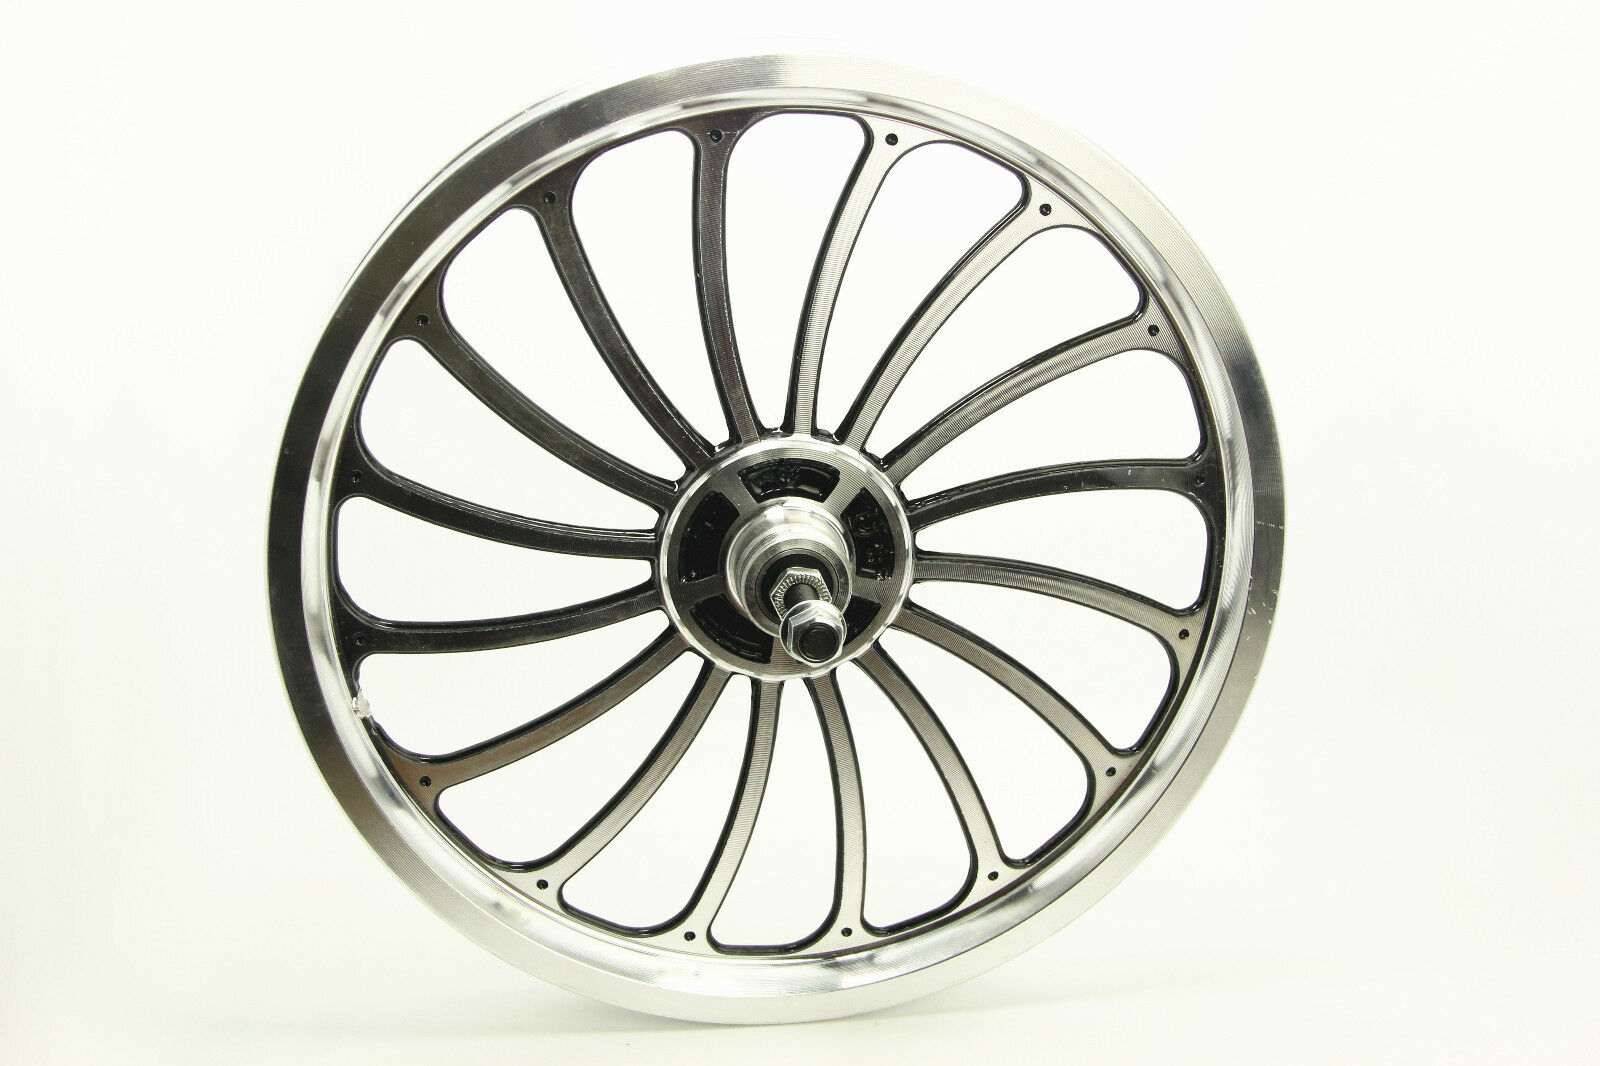 Bike Bicycle Front Wheel 16 X 1.75 2.125 2.5''  Scooter eBike Chopper  low-key luxury connotation